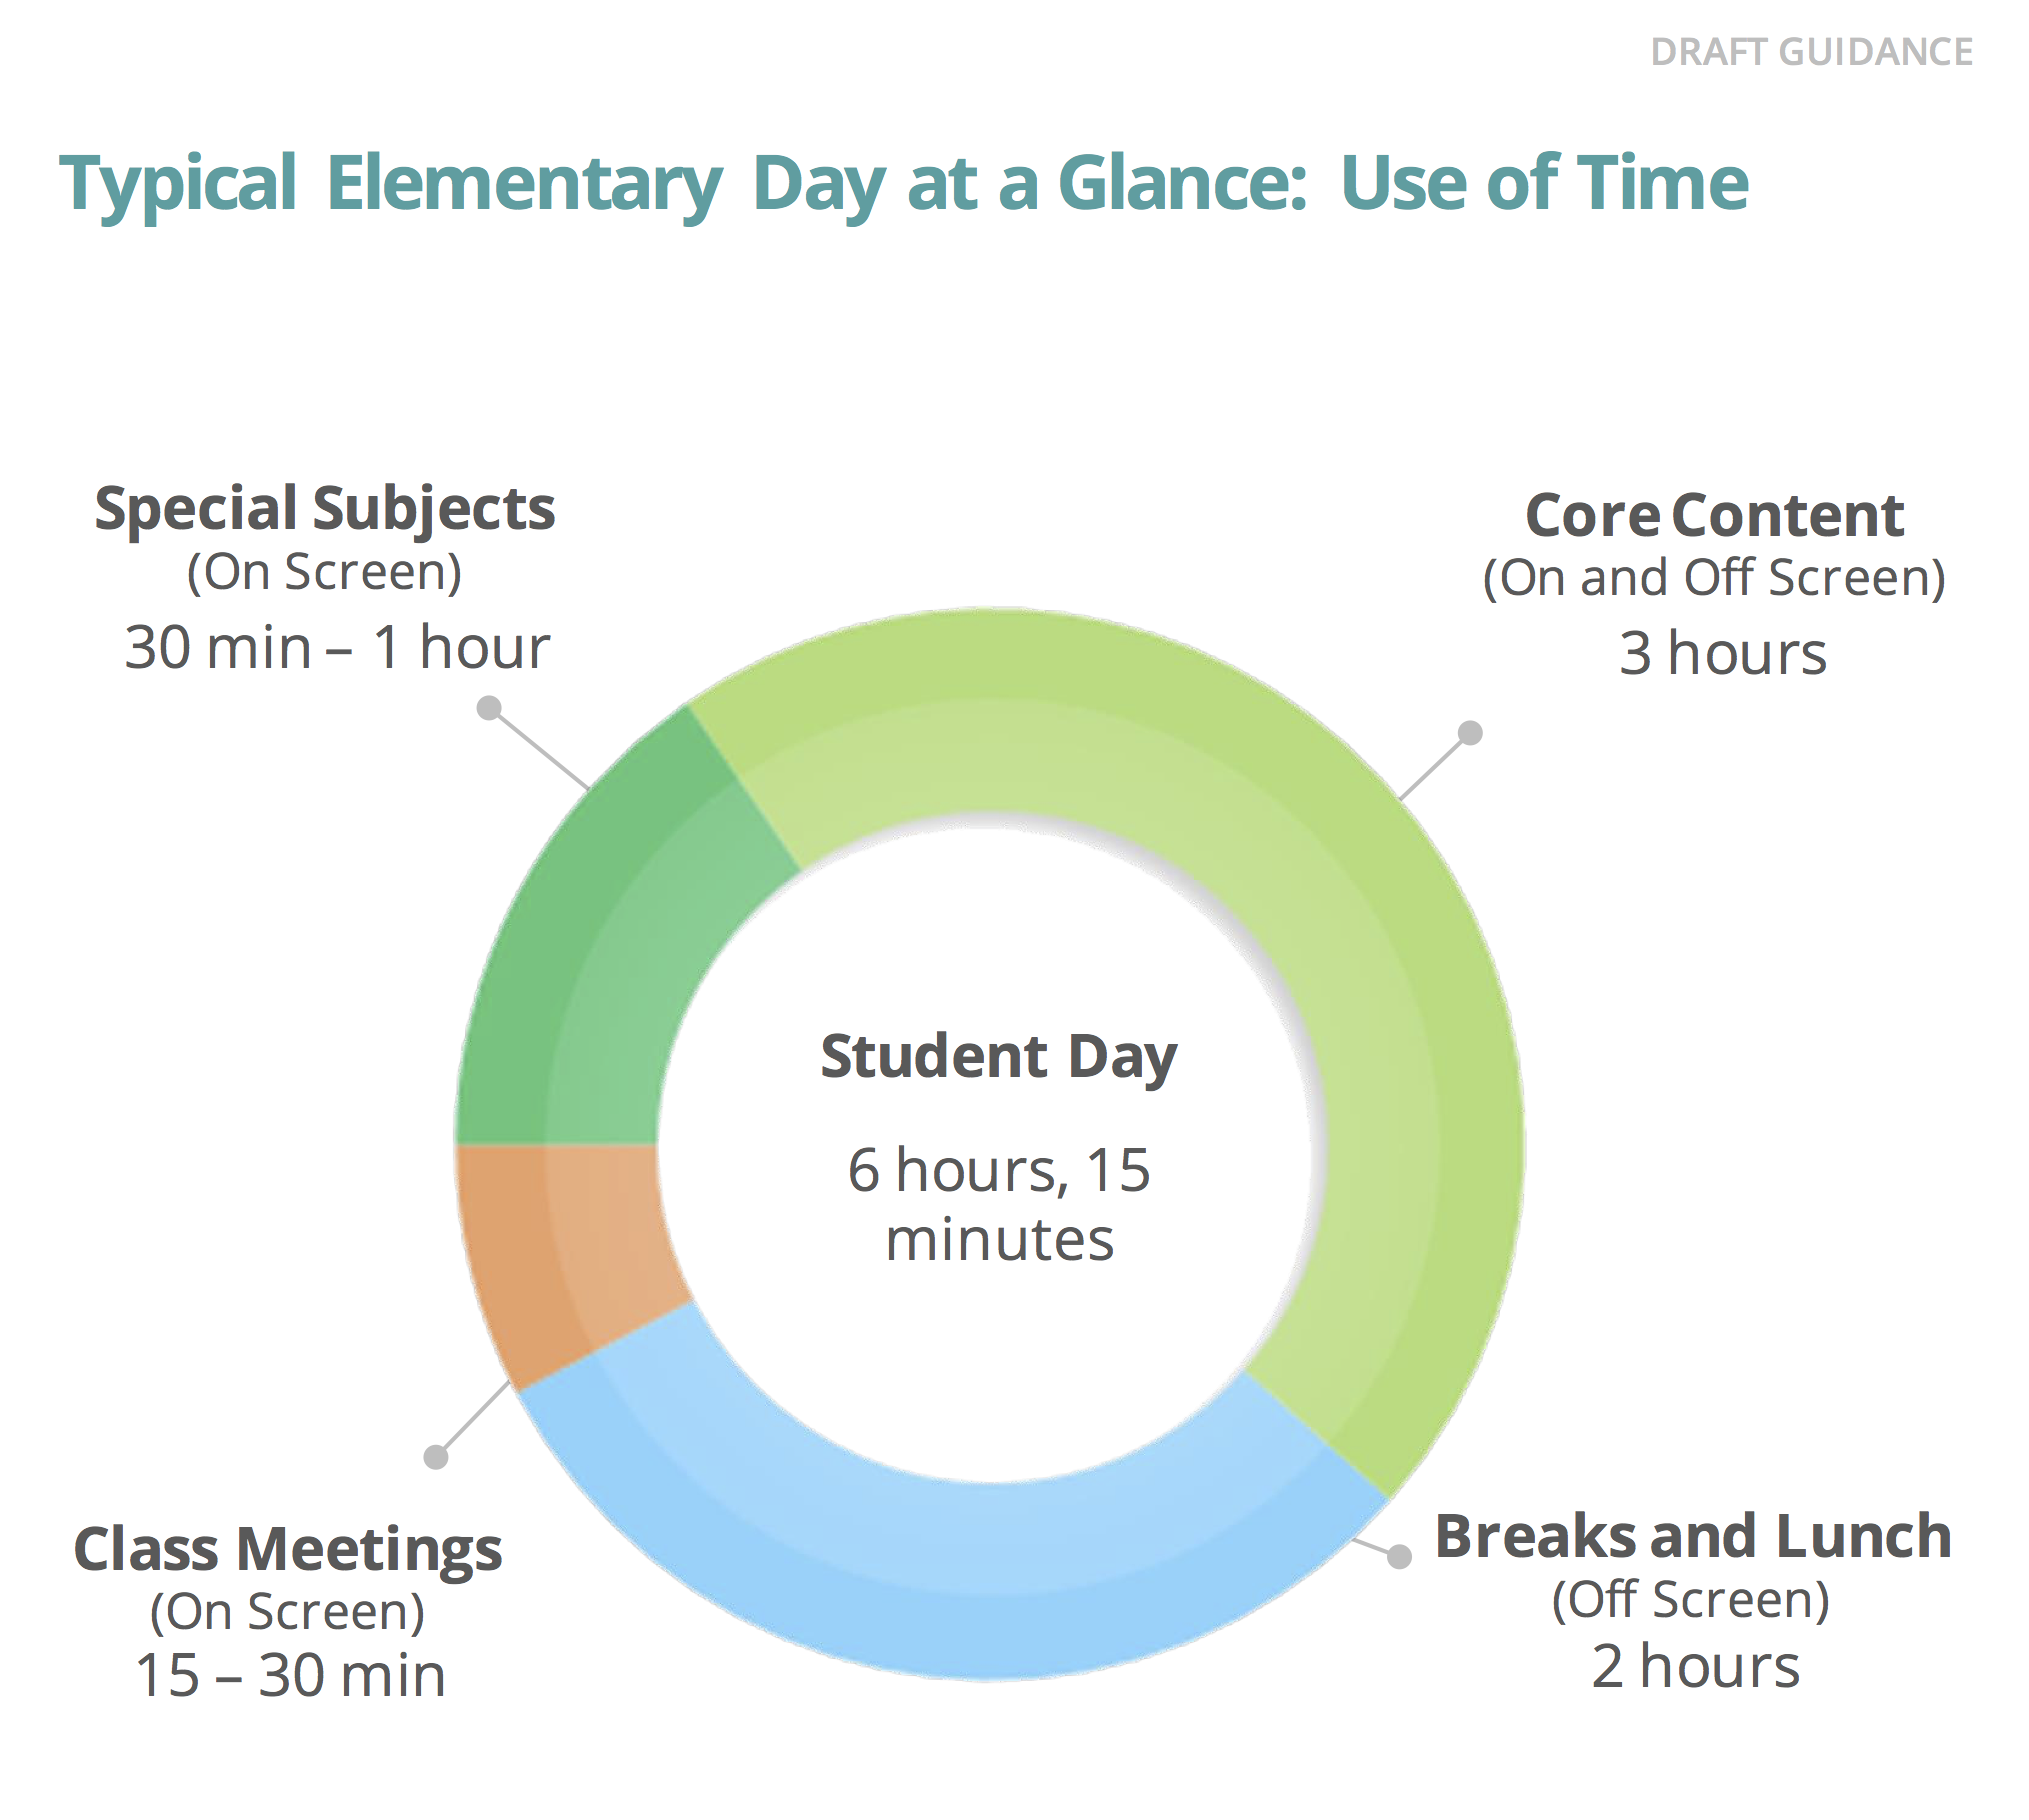 Figure 3. Typical Elementary Day at a Glance, Montgomery County Schools, MD